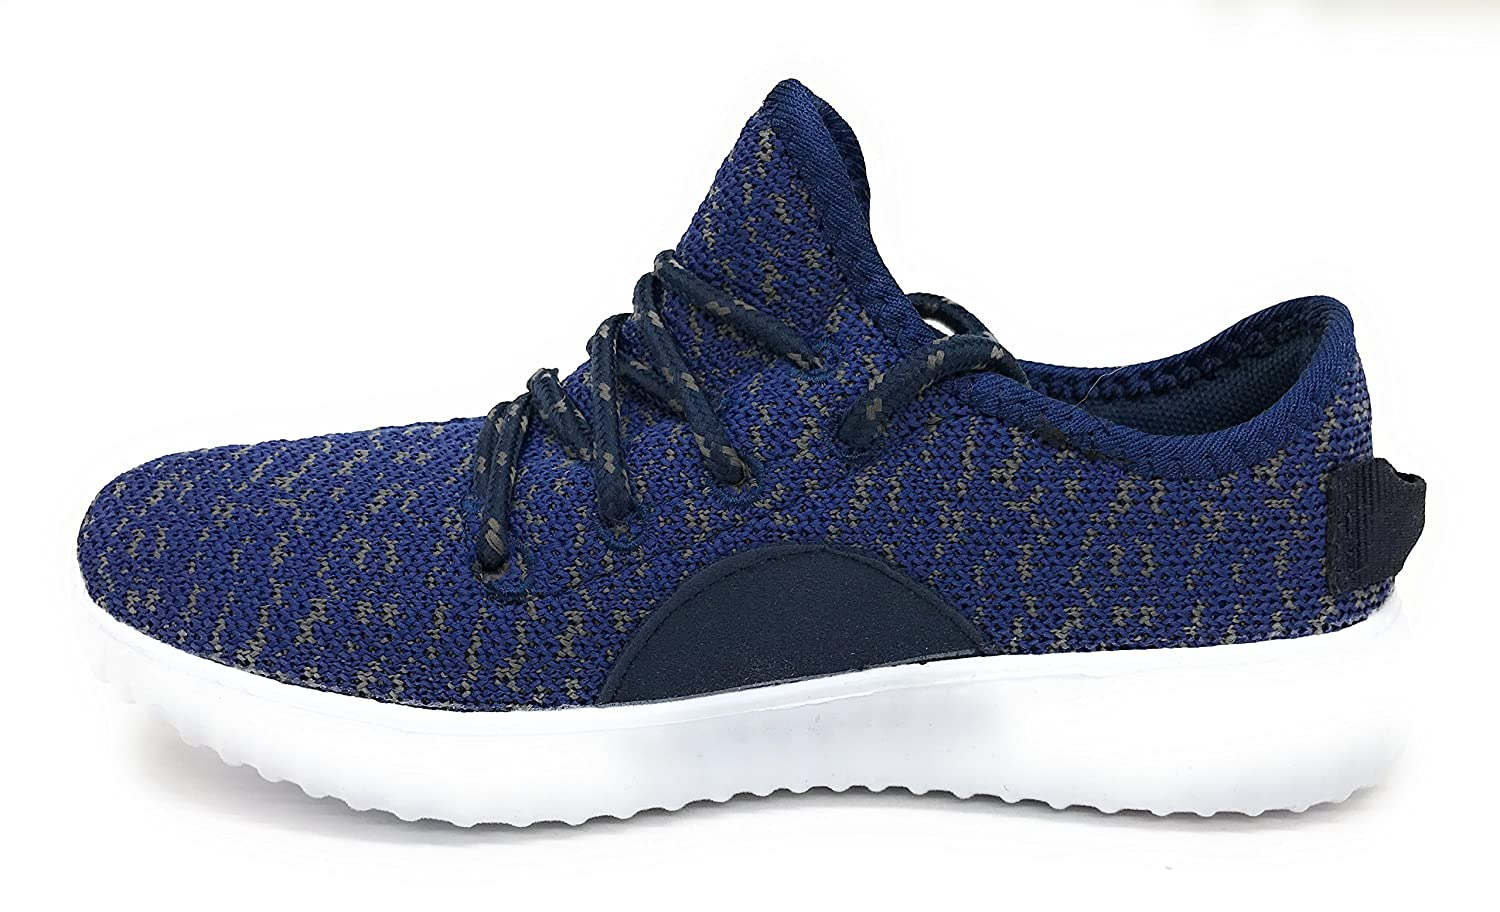 Blue Berry EASY21 Women Casual Fashion Sneakers Breathable Athletic Sports Light Weight Shoes B0735VWM7F 7.5 B(M) US|Navy/Gray